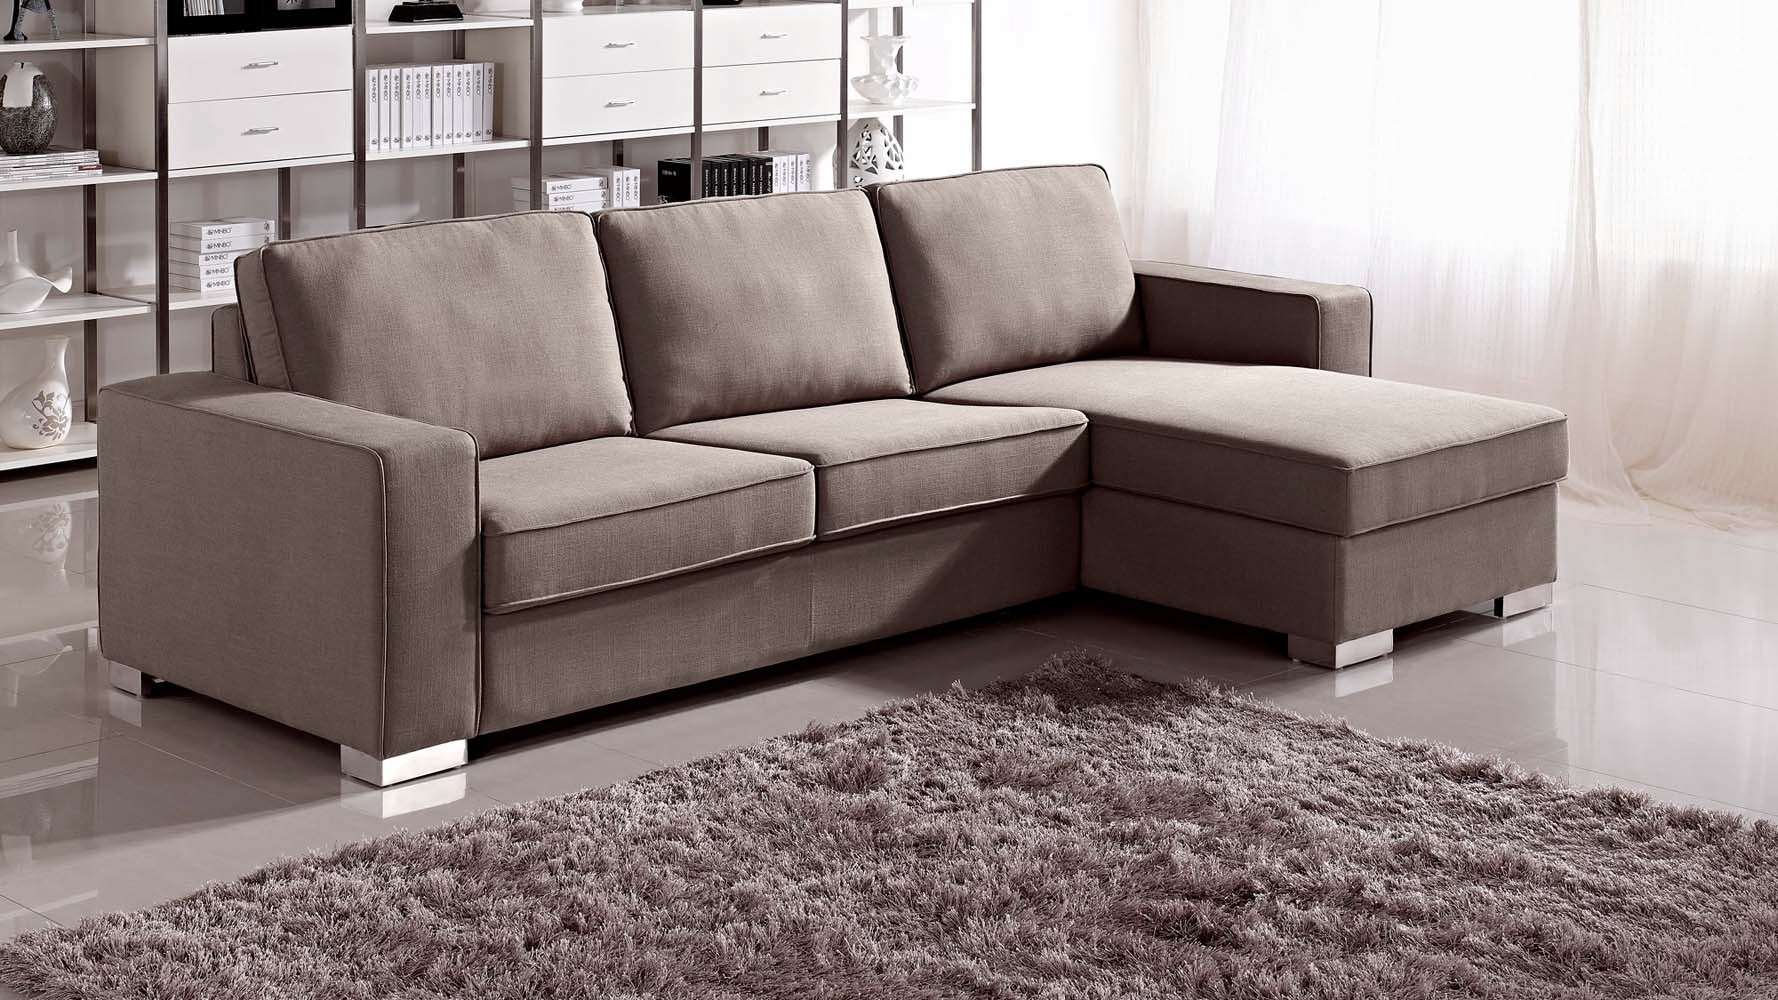 Current L Shaped Sectional Sleeper Sofas With Regard To Innovative Sofa Sleeper Sectionals Beautiful Interior Design Style (View 14 of 15)